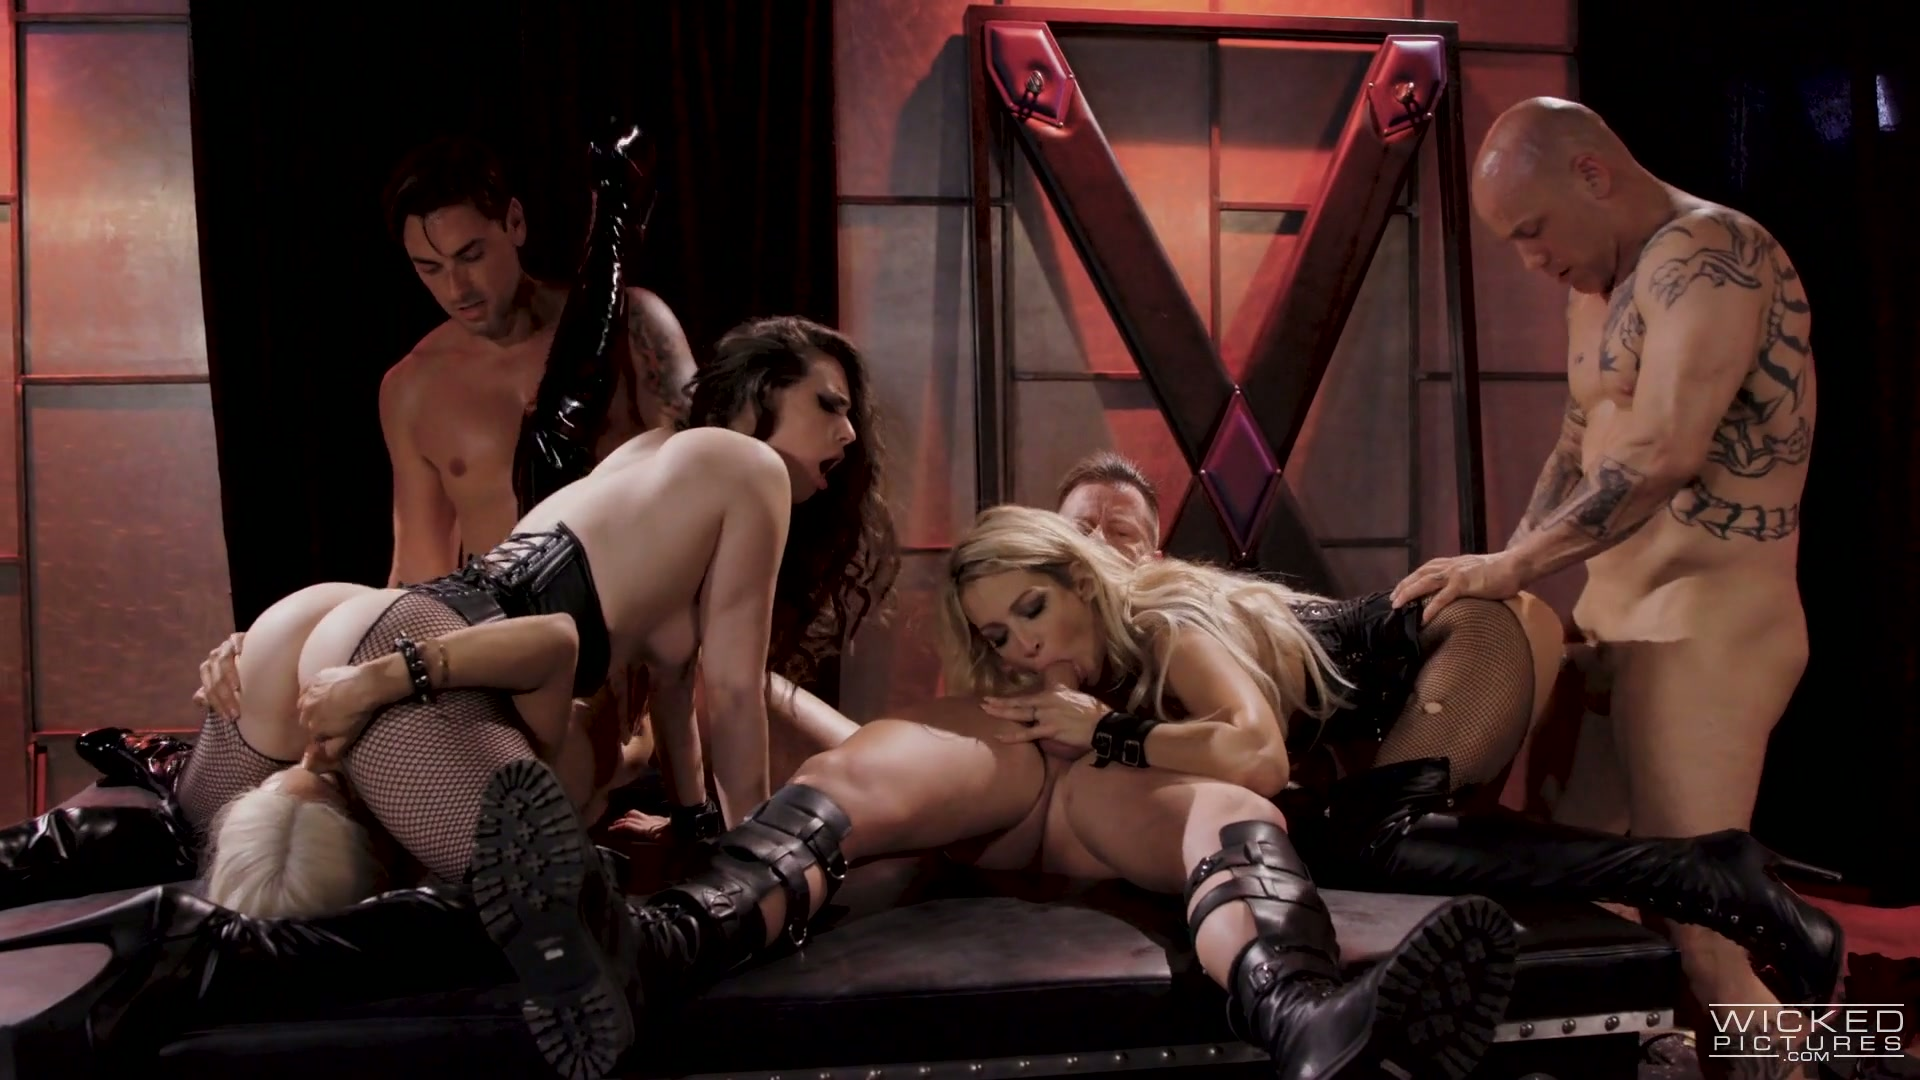 Wild and stunning Jessica Drake takes part in extreme hot orgy